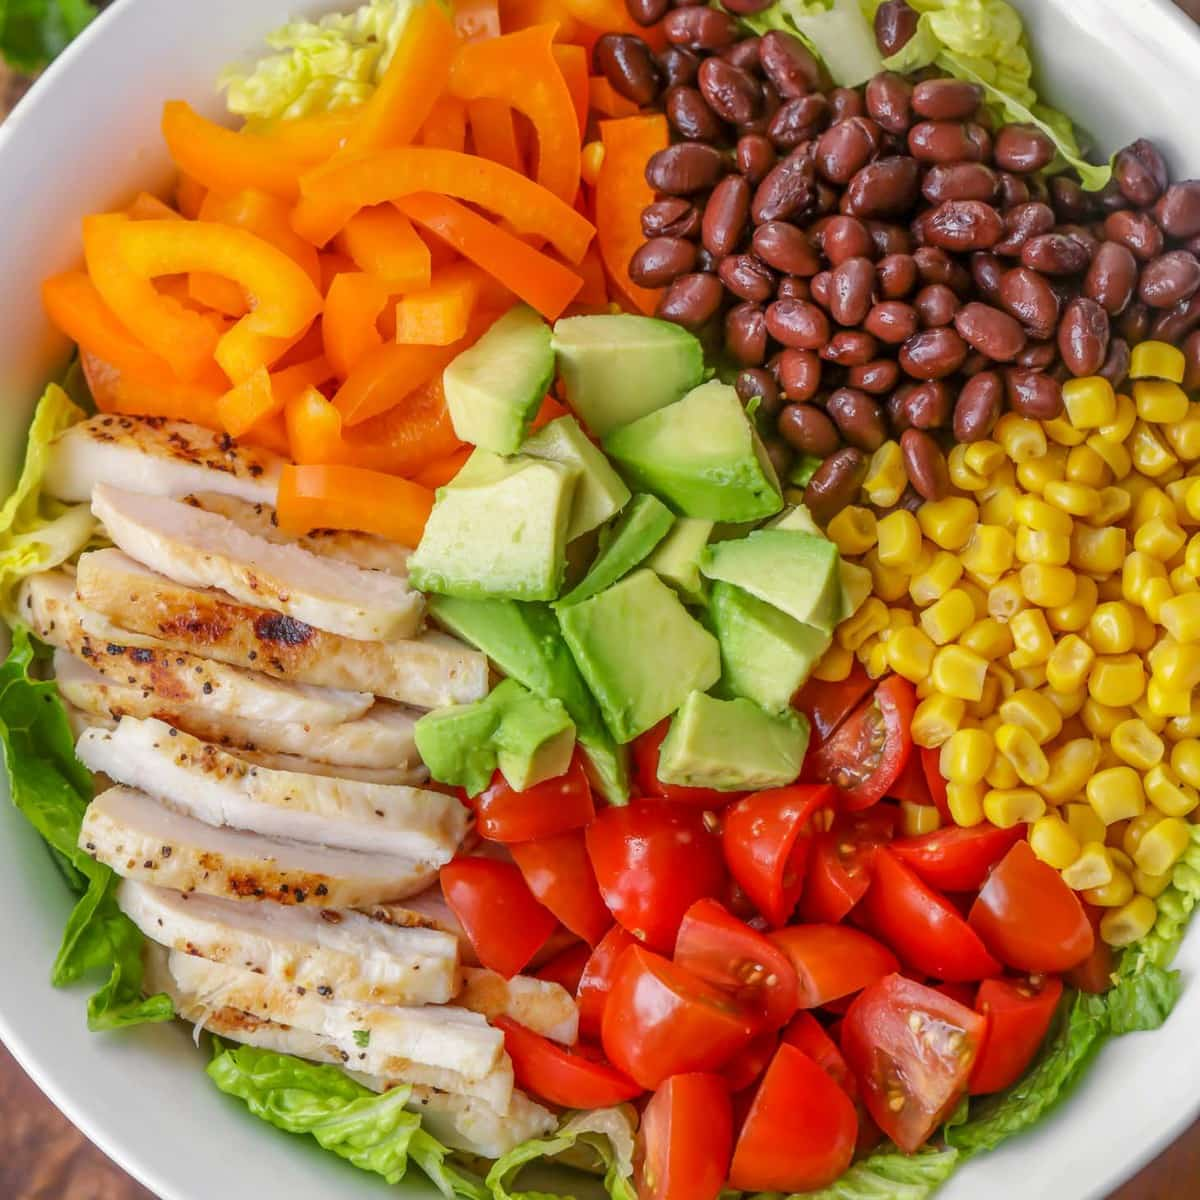 Southwest Salad recipe ingredients in bowl